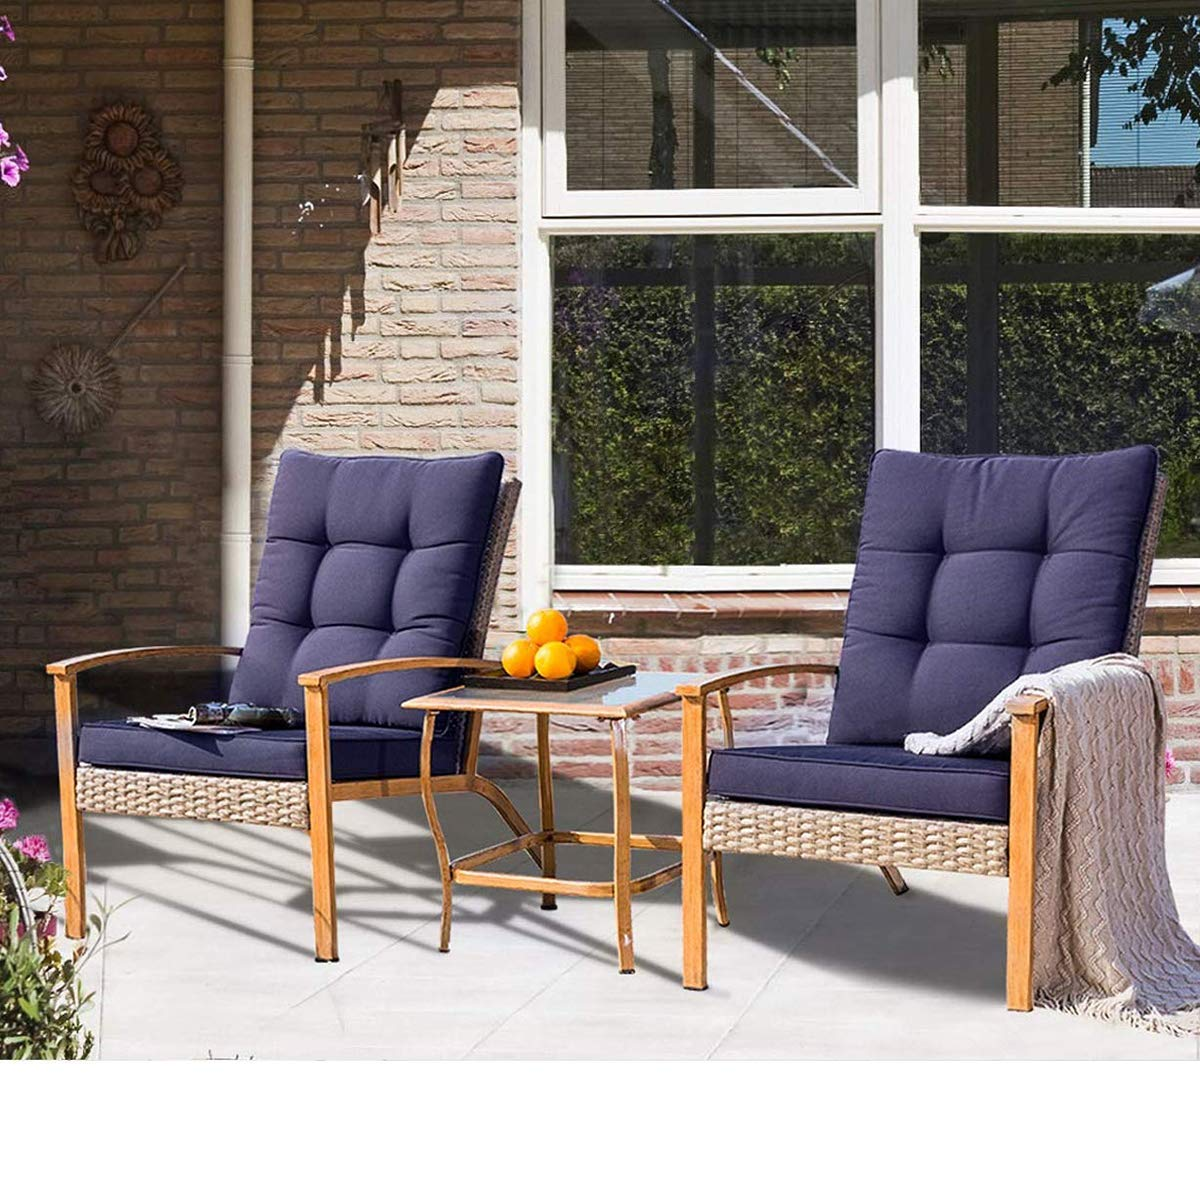 SUNCROWN Outdoor Furniture 3-Piece Patio Bistro Set Grey Wicker Patio Furniture W Wood-Grain Arm Rest – Two Chairs with Glass Coffee Table Nautical Navy Cushion